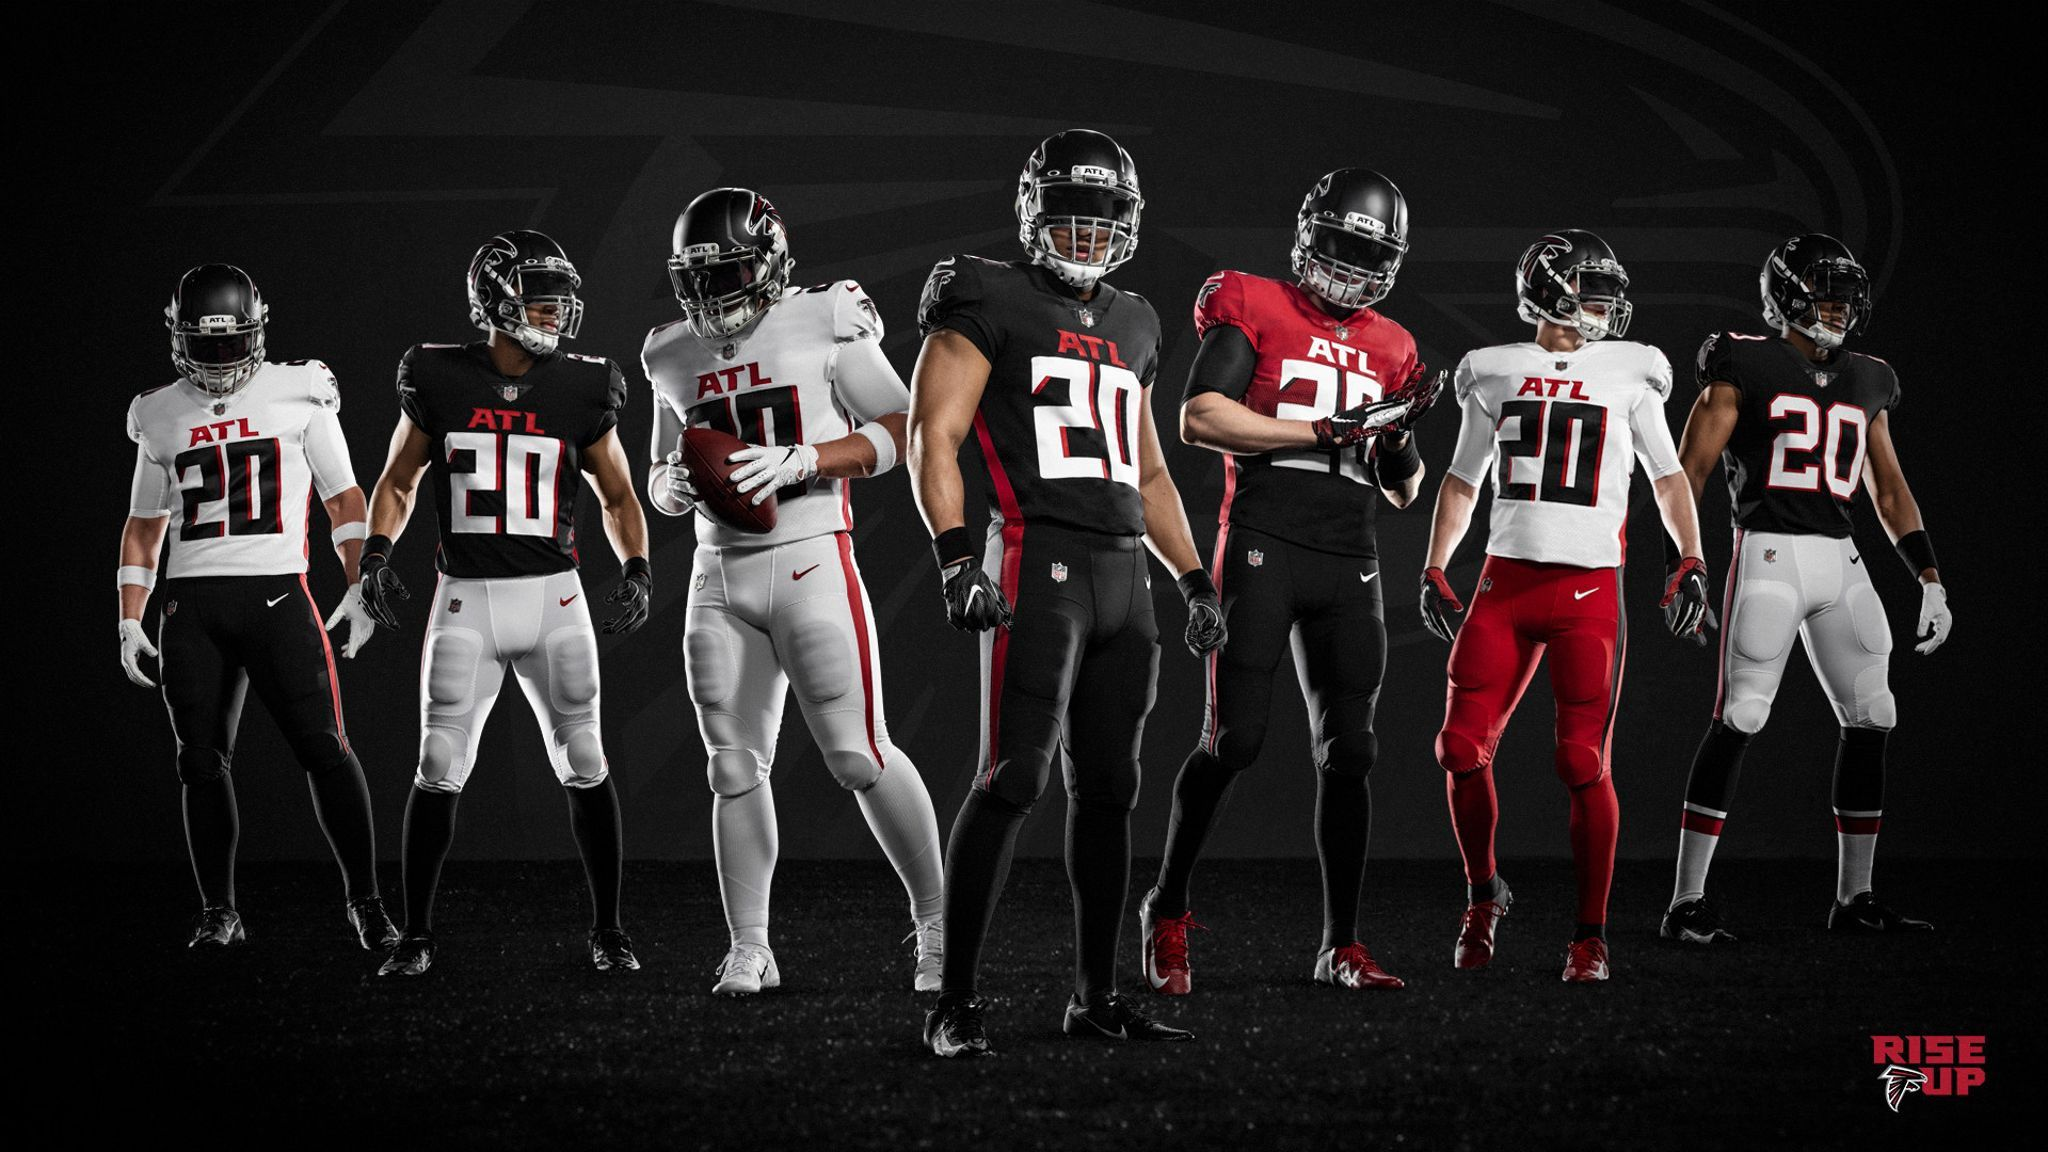 Falcons' jersey schedule for 2020 season